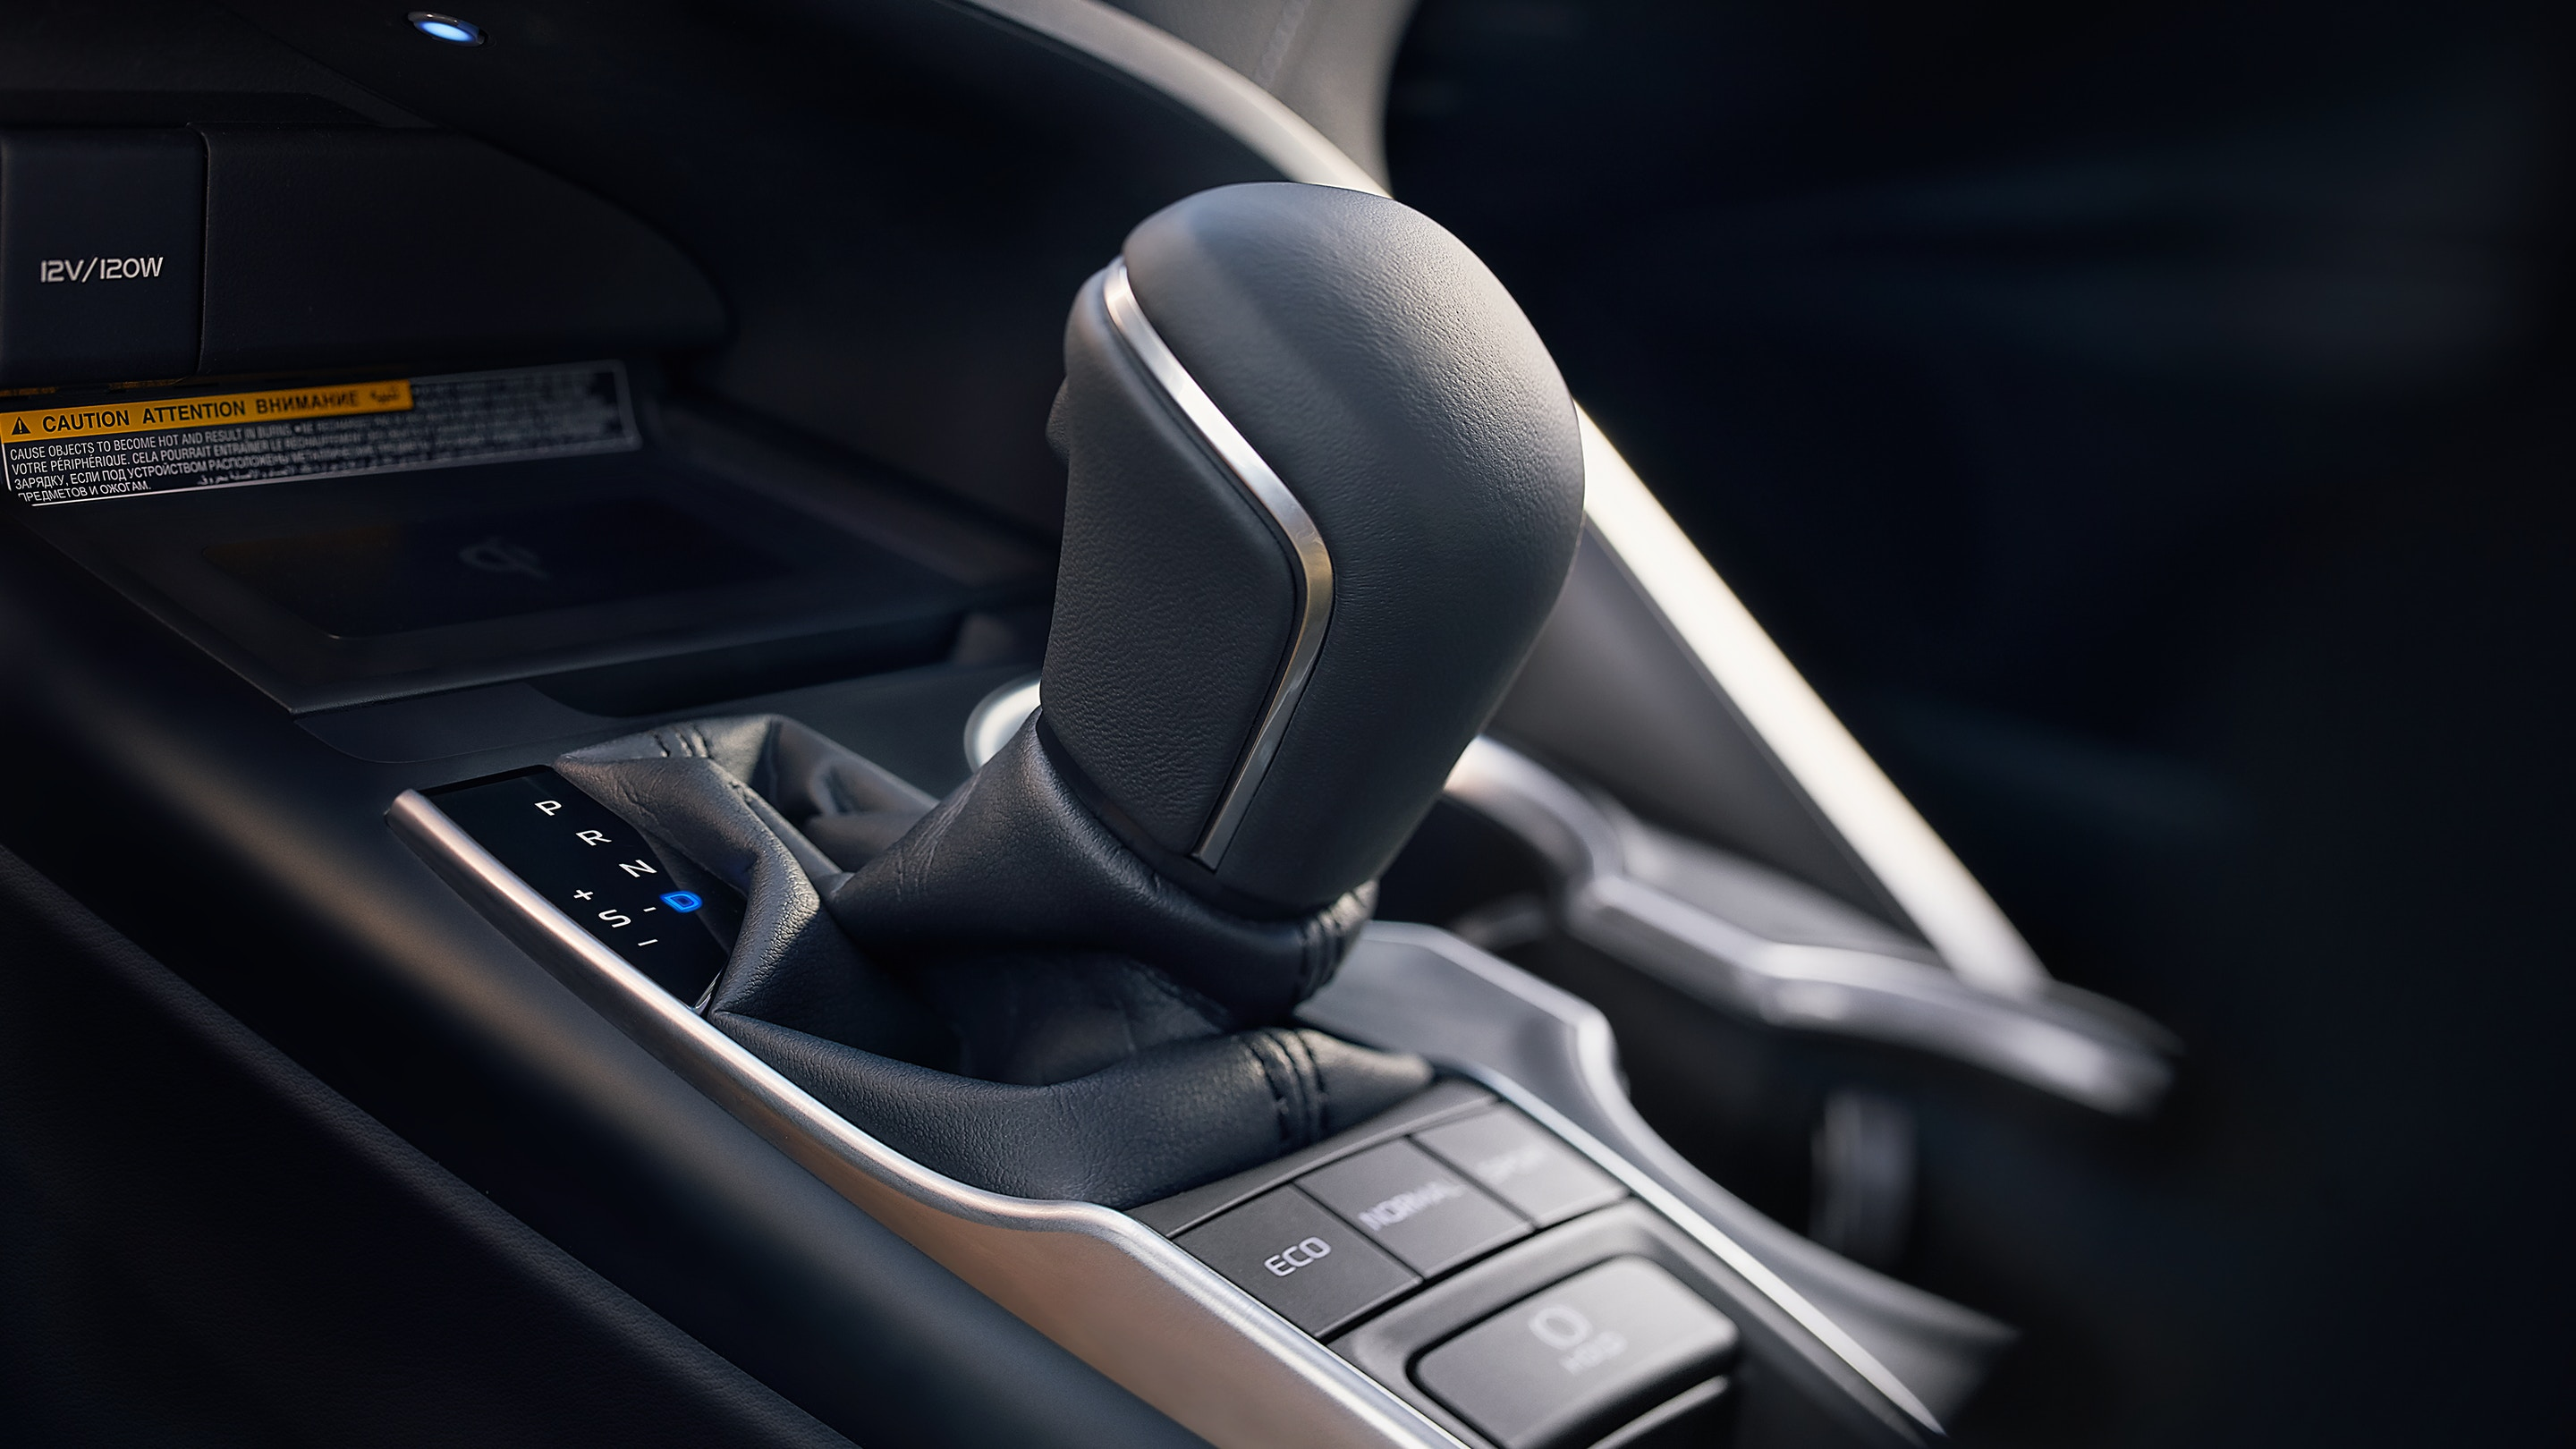 Cruise Around with Style in the Camry!